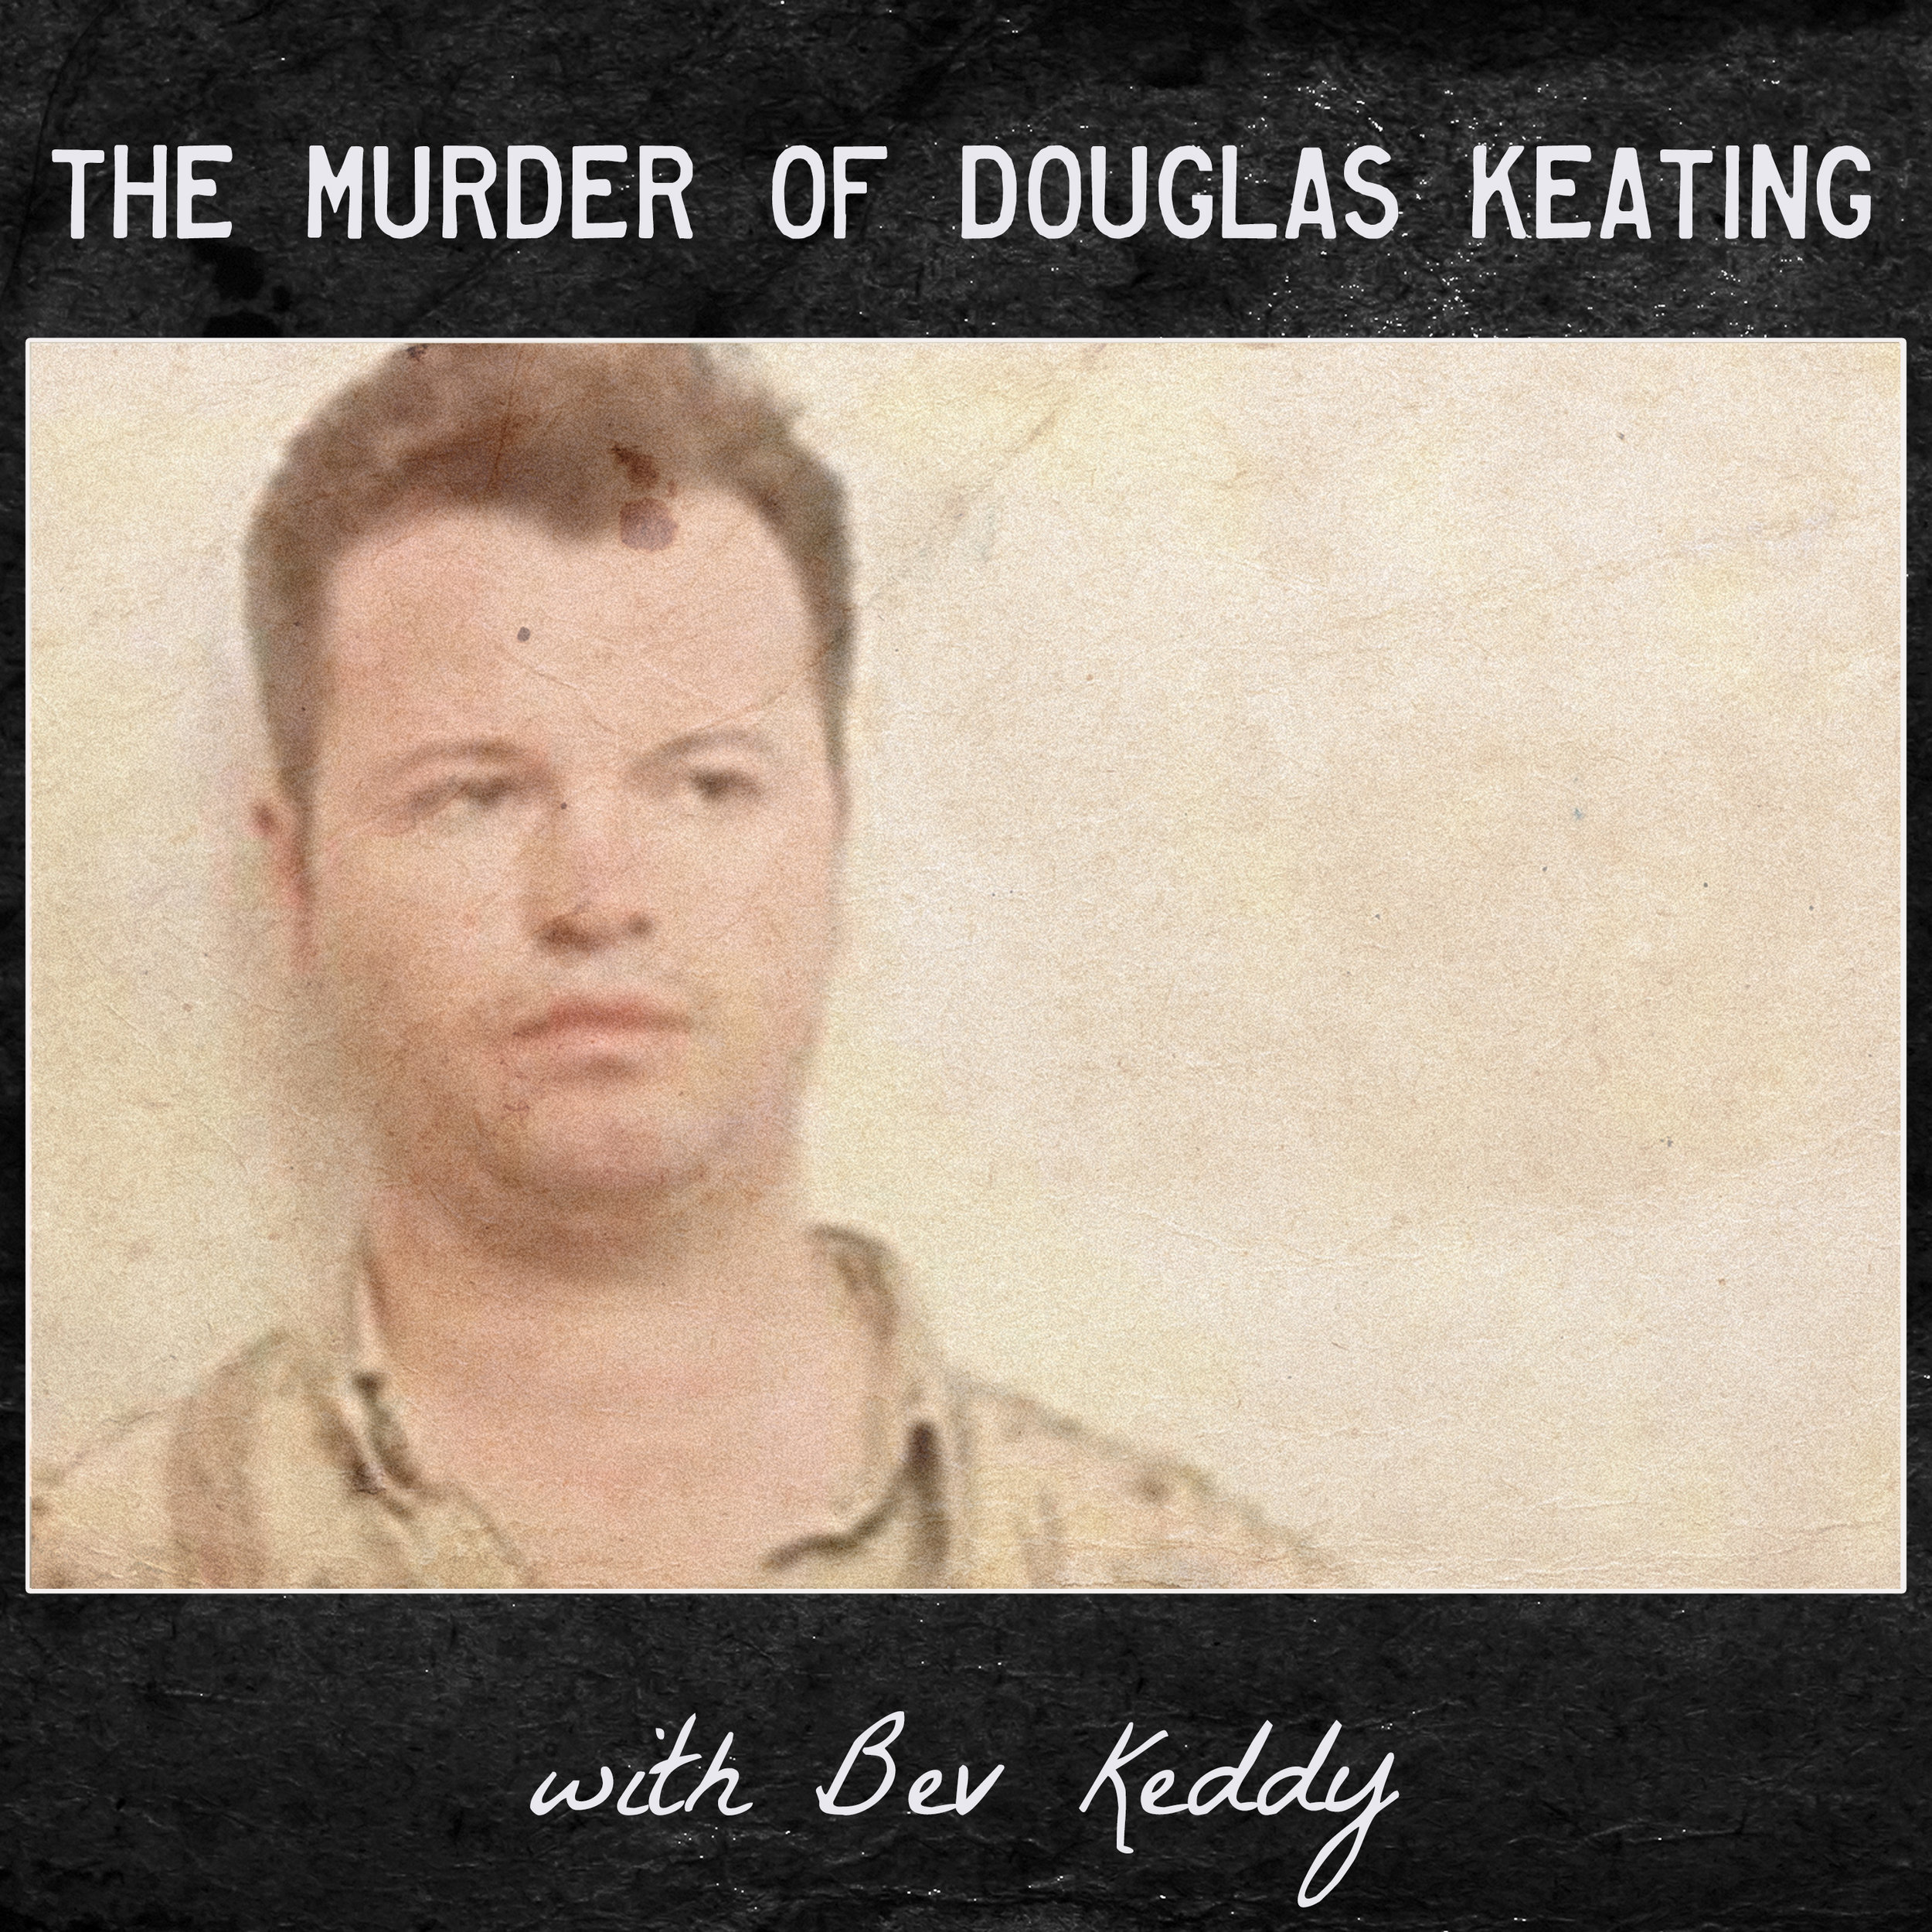 keating coverart 2.jpg